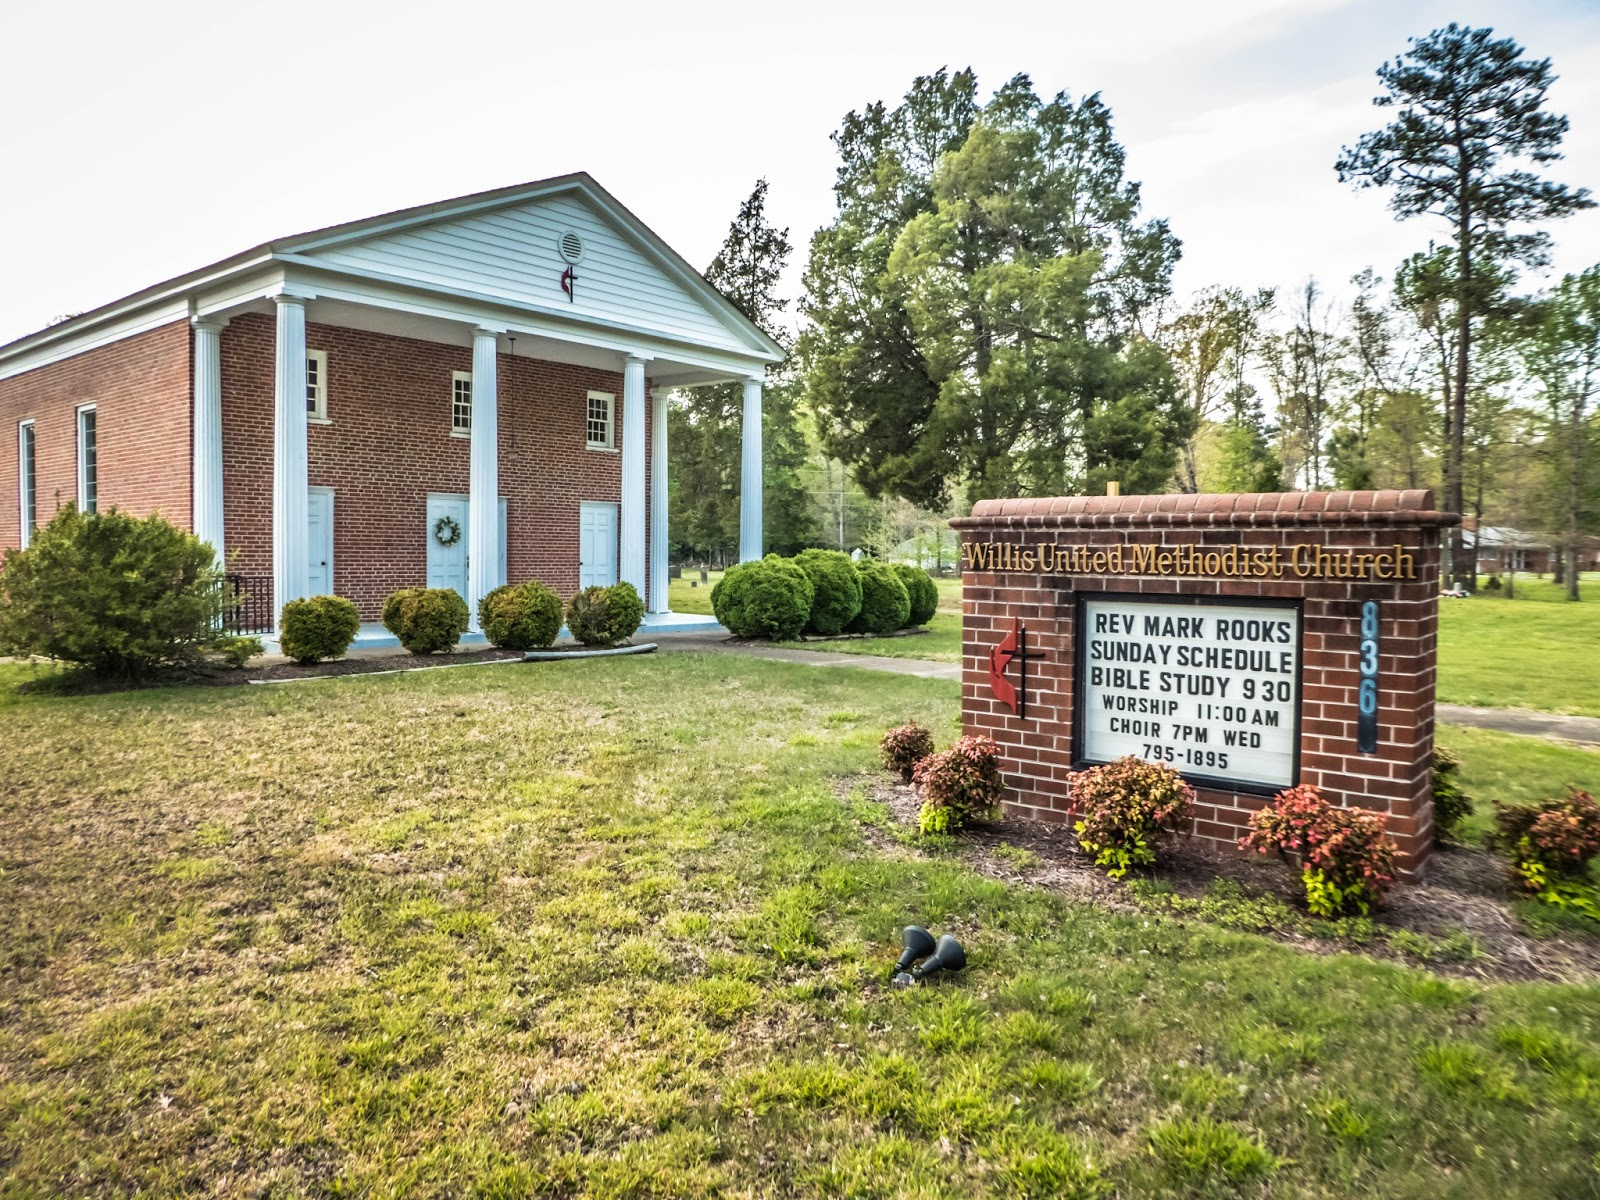 Willis United Methodist Church